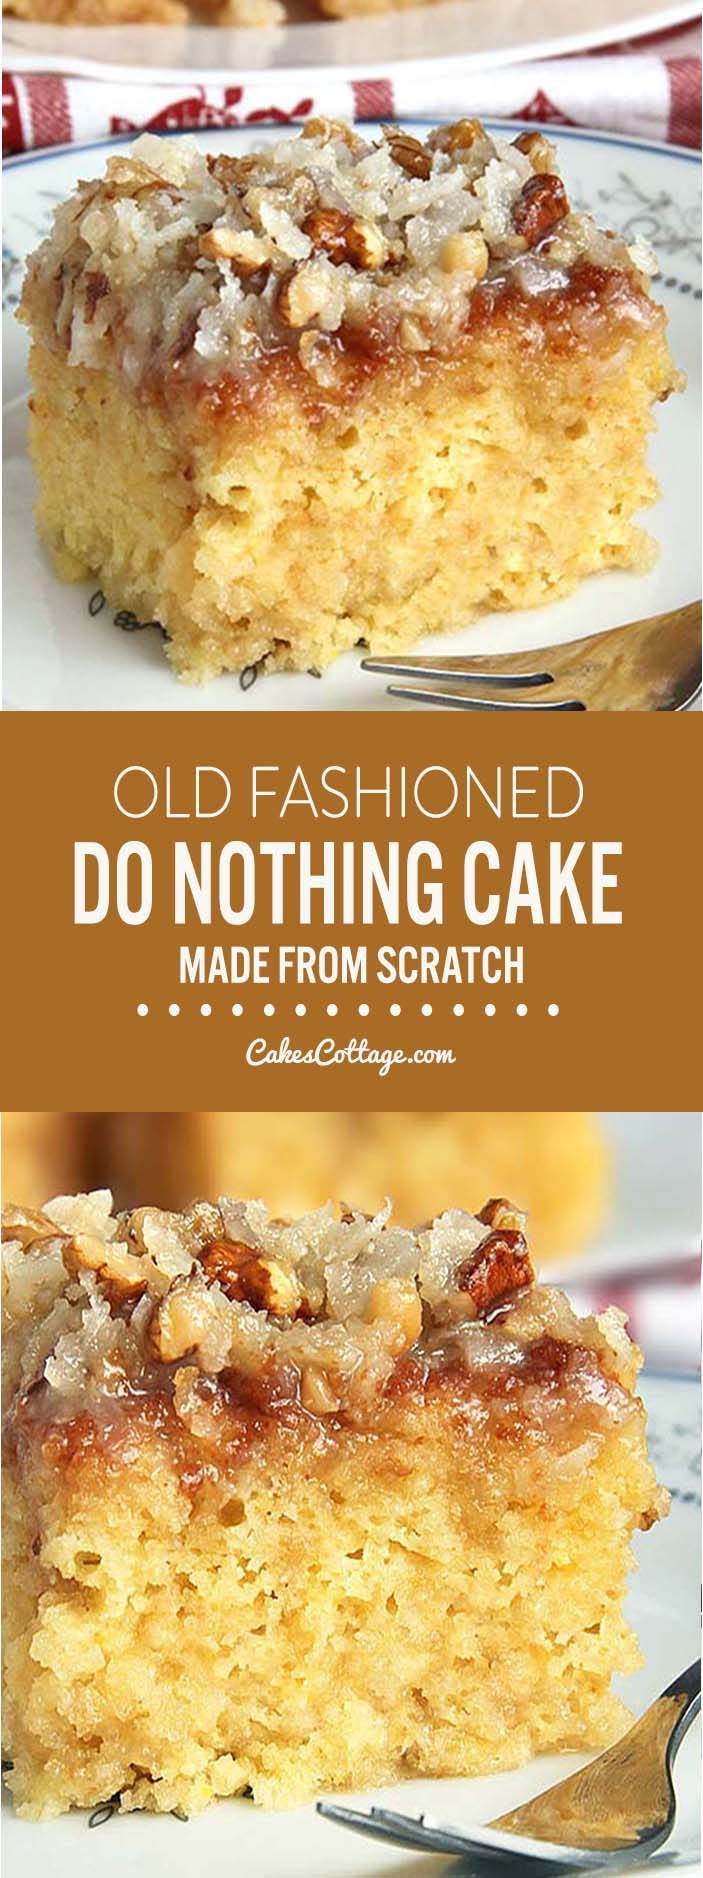 This cake is not only made from scratch but so ridiculously easy to make.....